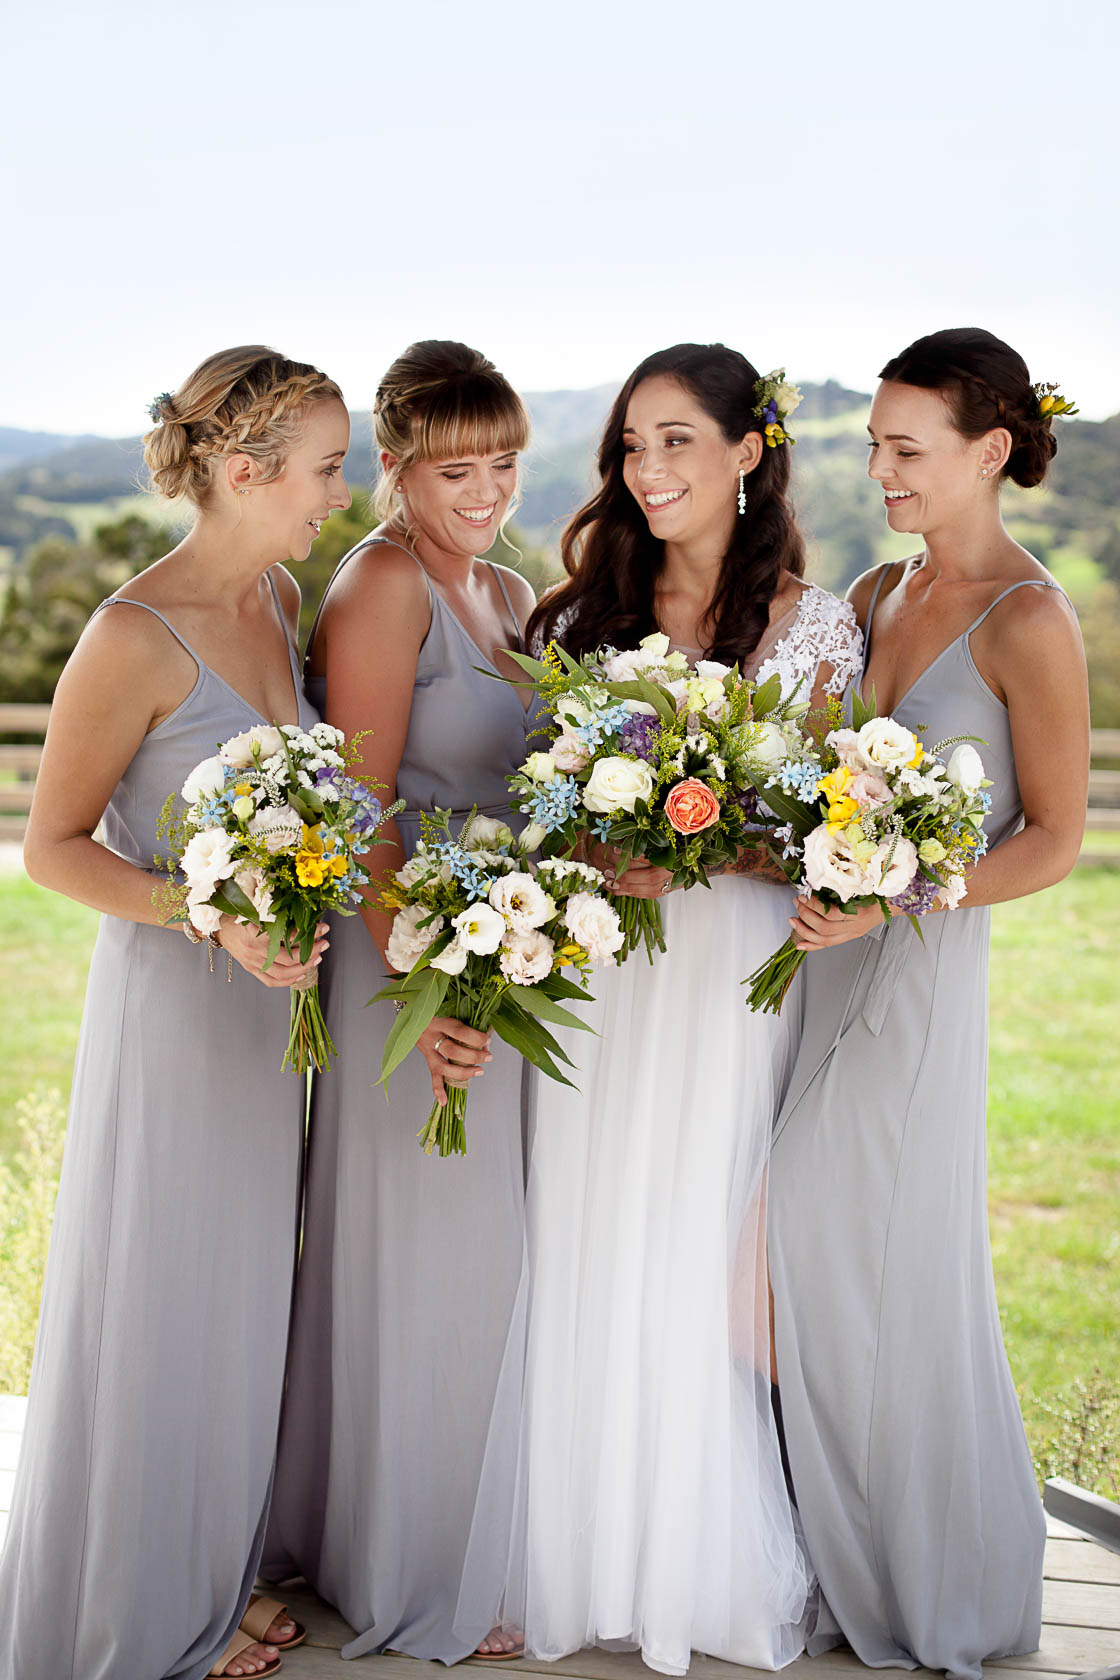 Matakana-wedding-auckland5643-Edit.jpg